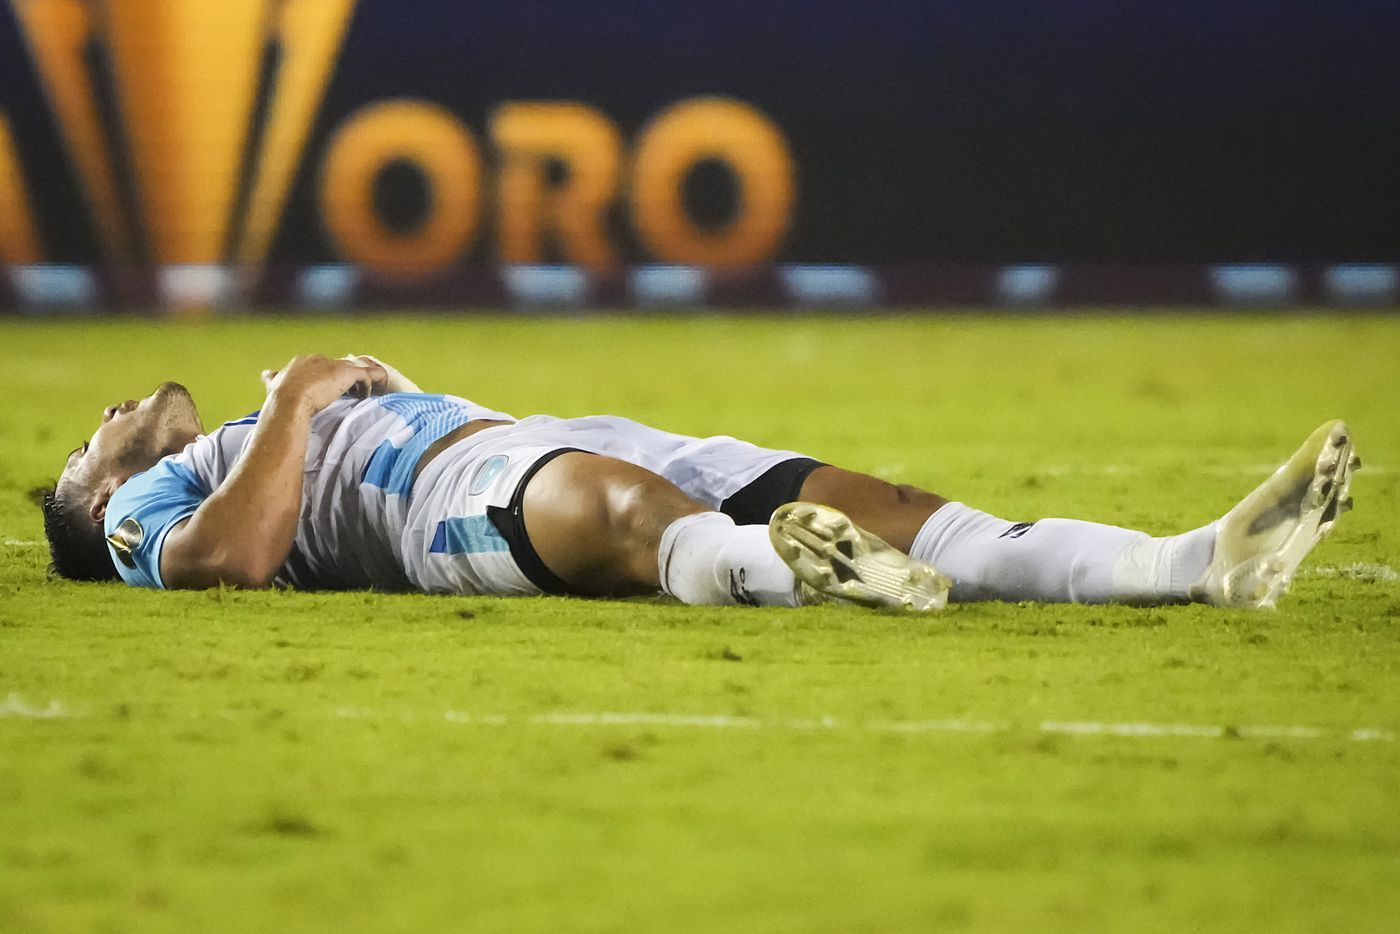 Guatemala forward Darwin Lom collapses on the turf after a collision during the second half of a CONCACAF Gold Cup Group A soccer match against Mexico at the Cotton Bowl on Wednesday, July 14, 2021, in Dallas.